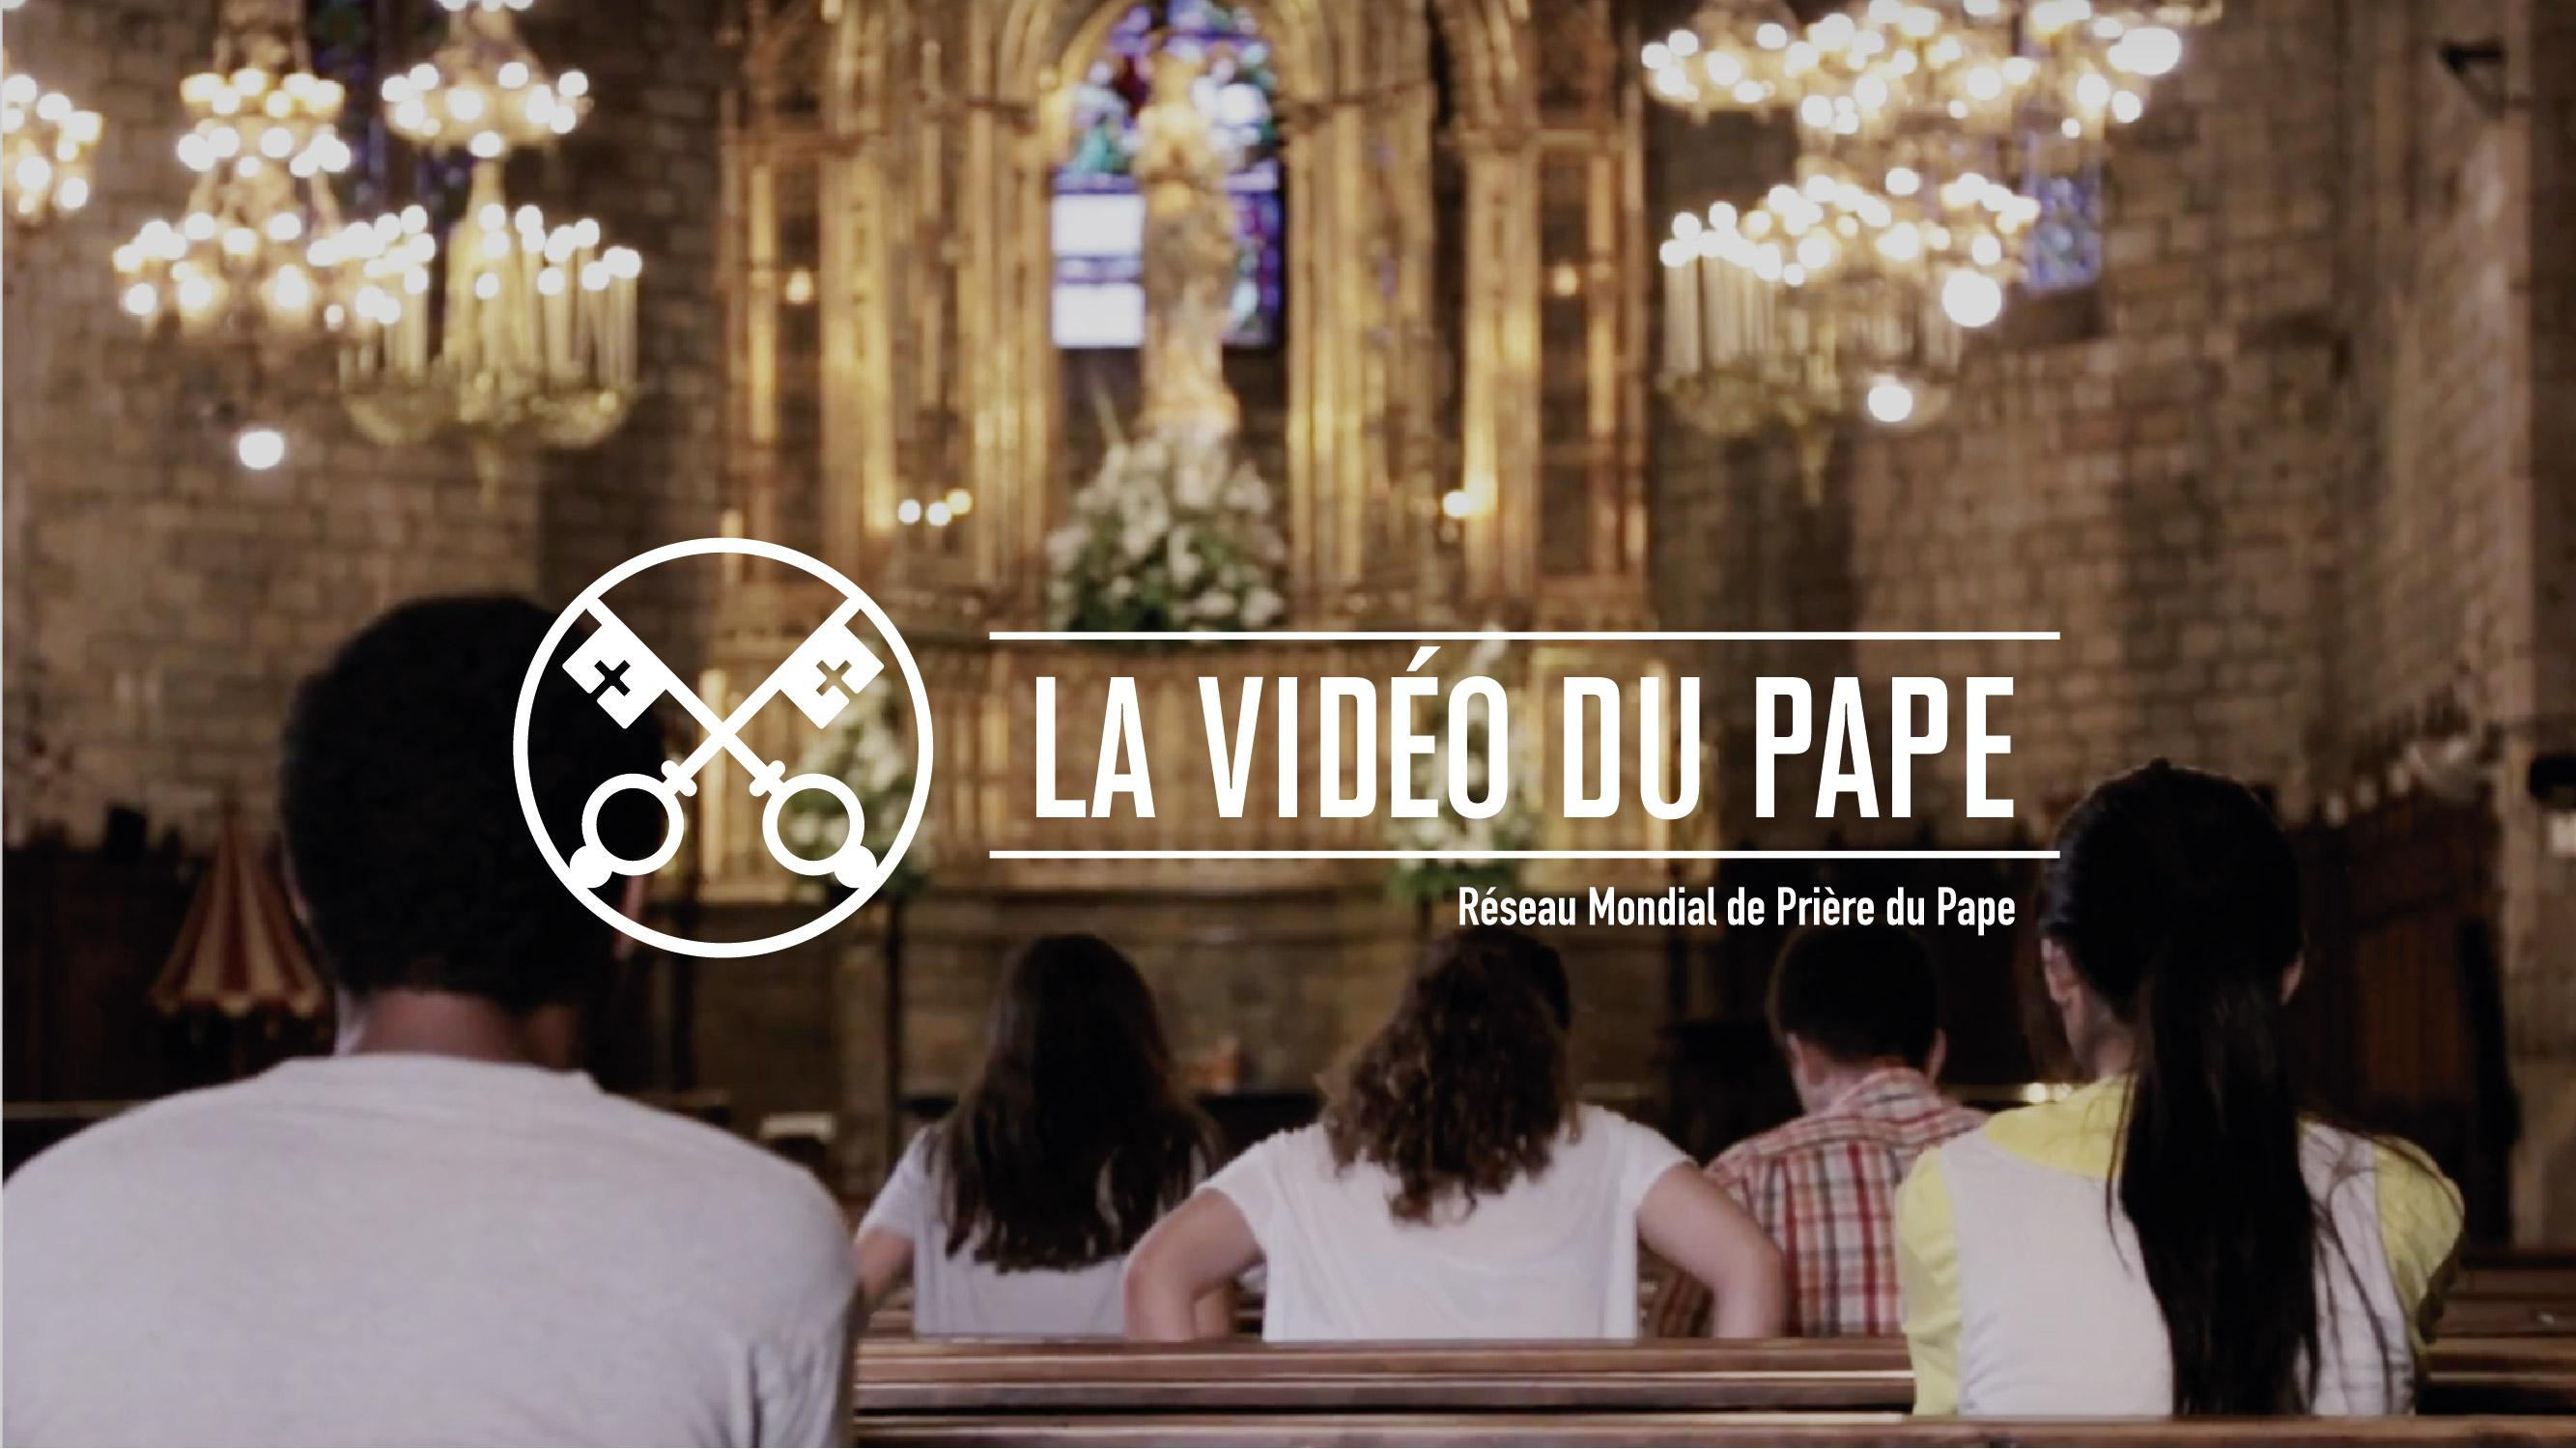 Official-Image-The-Pope-Video-09-SEP-2017-Parishes-at-the-service-of-mission-4-French